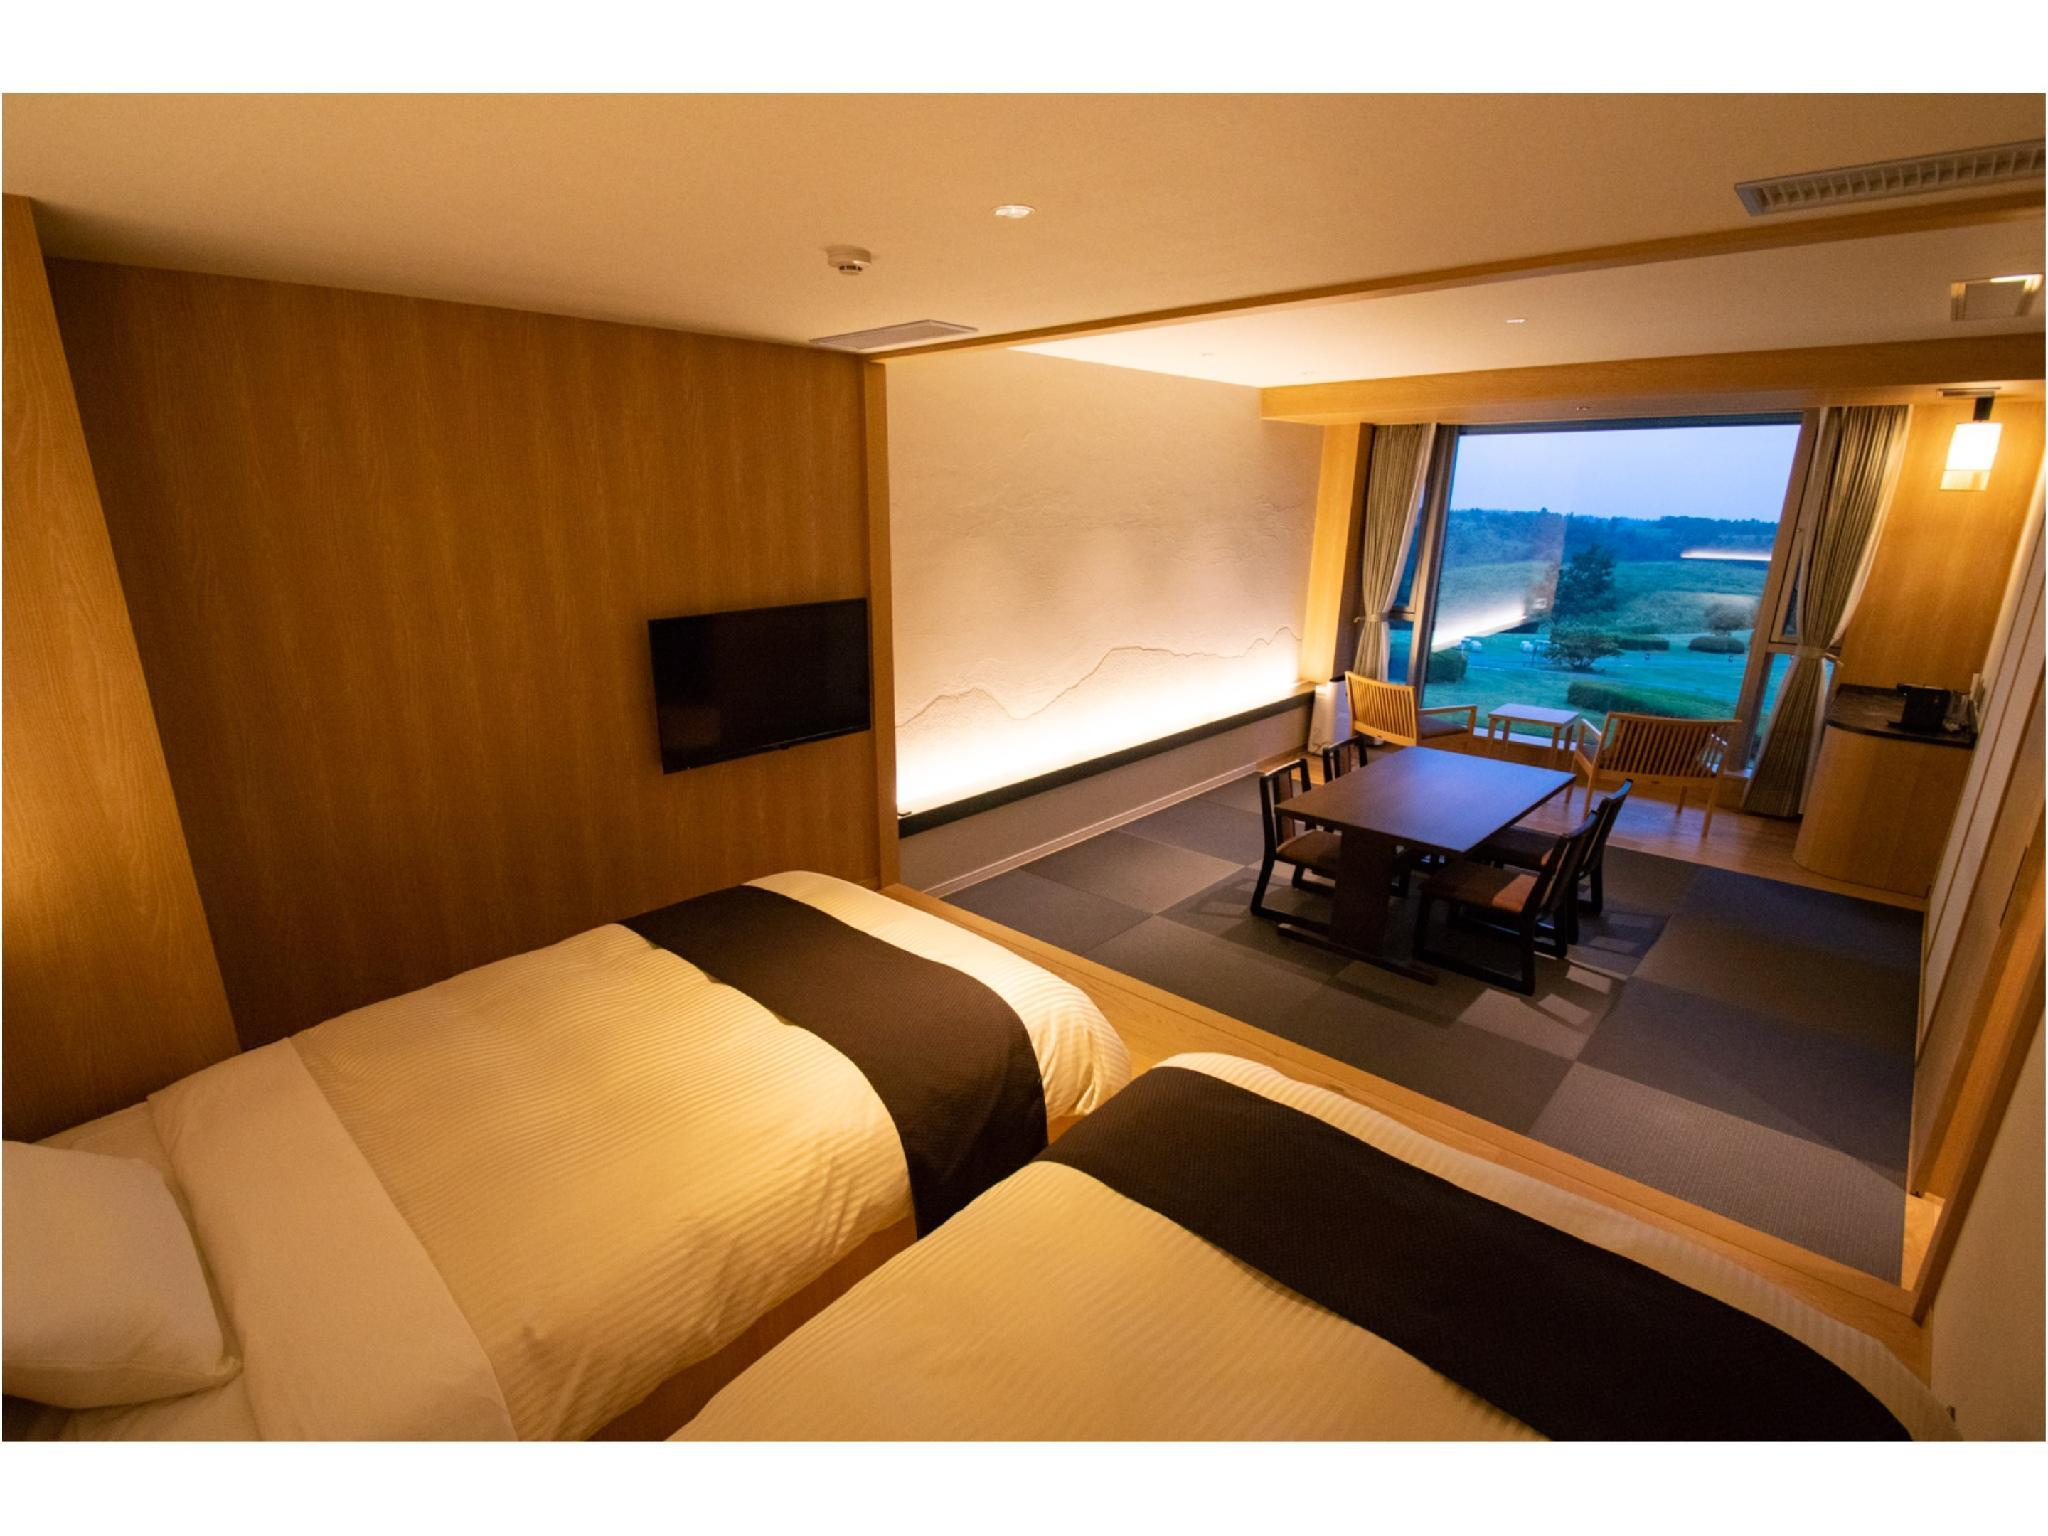 Standard Japanese/Western-style Room (West Wing) *No view designation